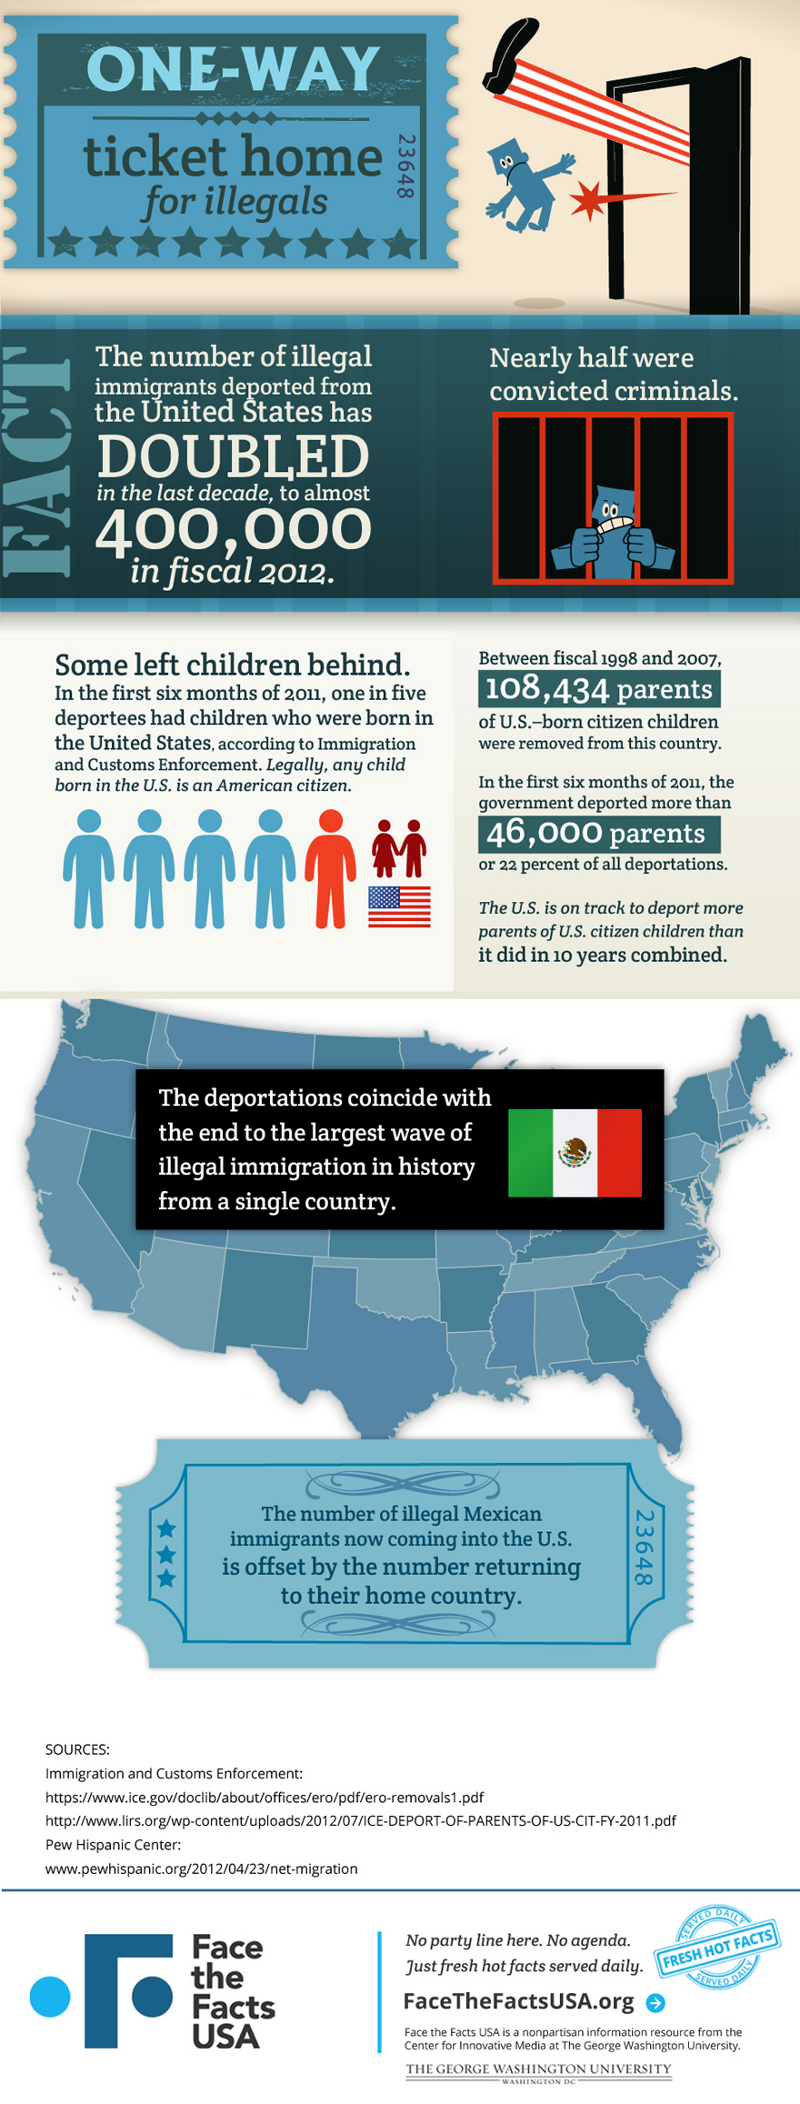 Convictions of Illegal Immigrants